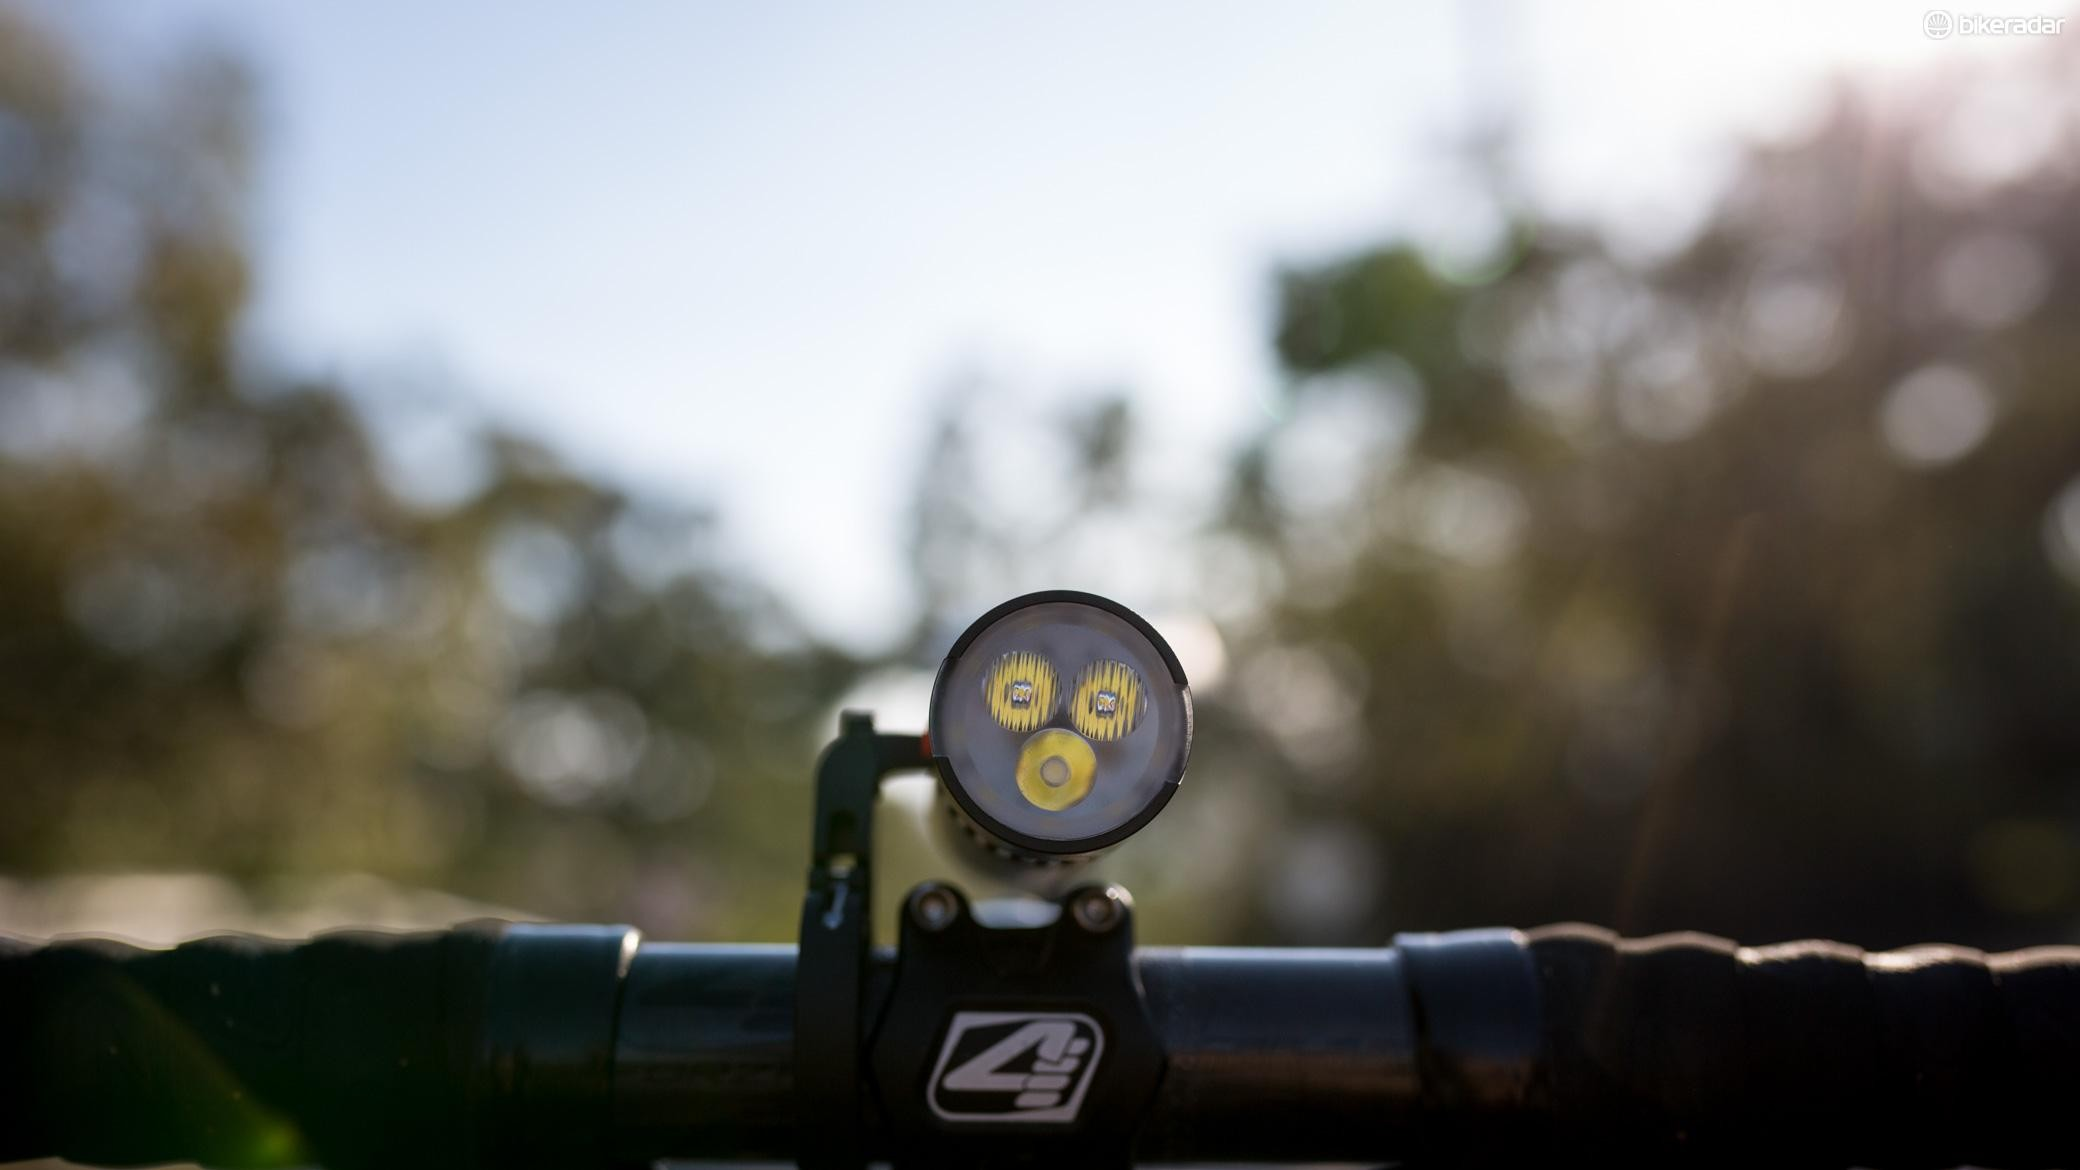 The side mount puts the light in line with your stem